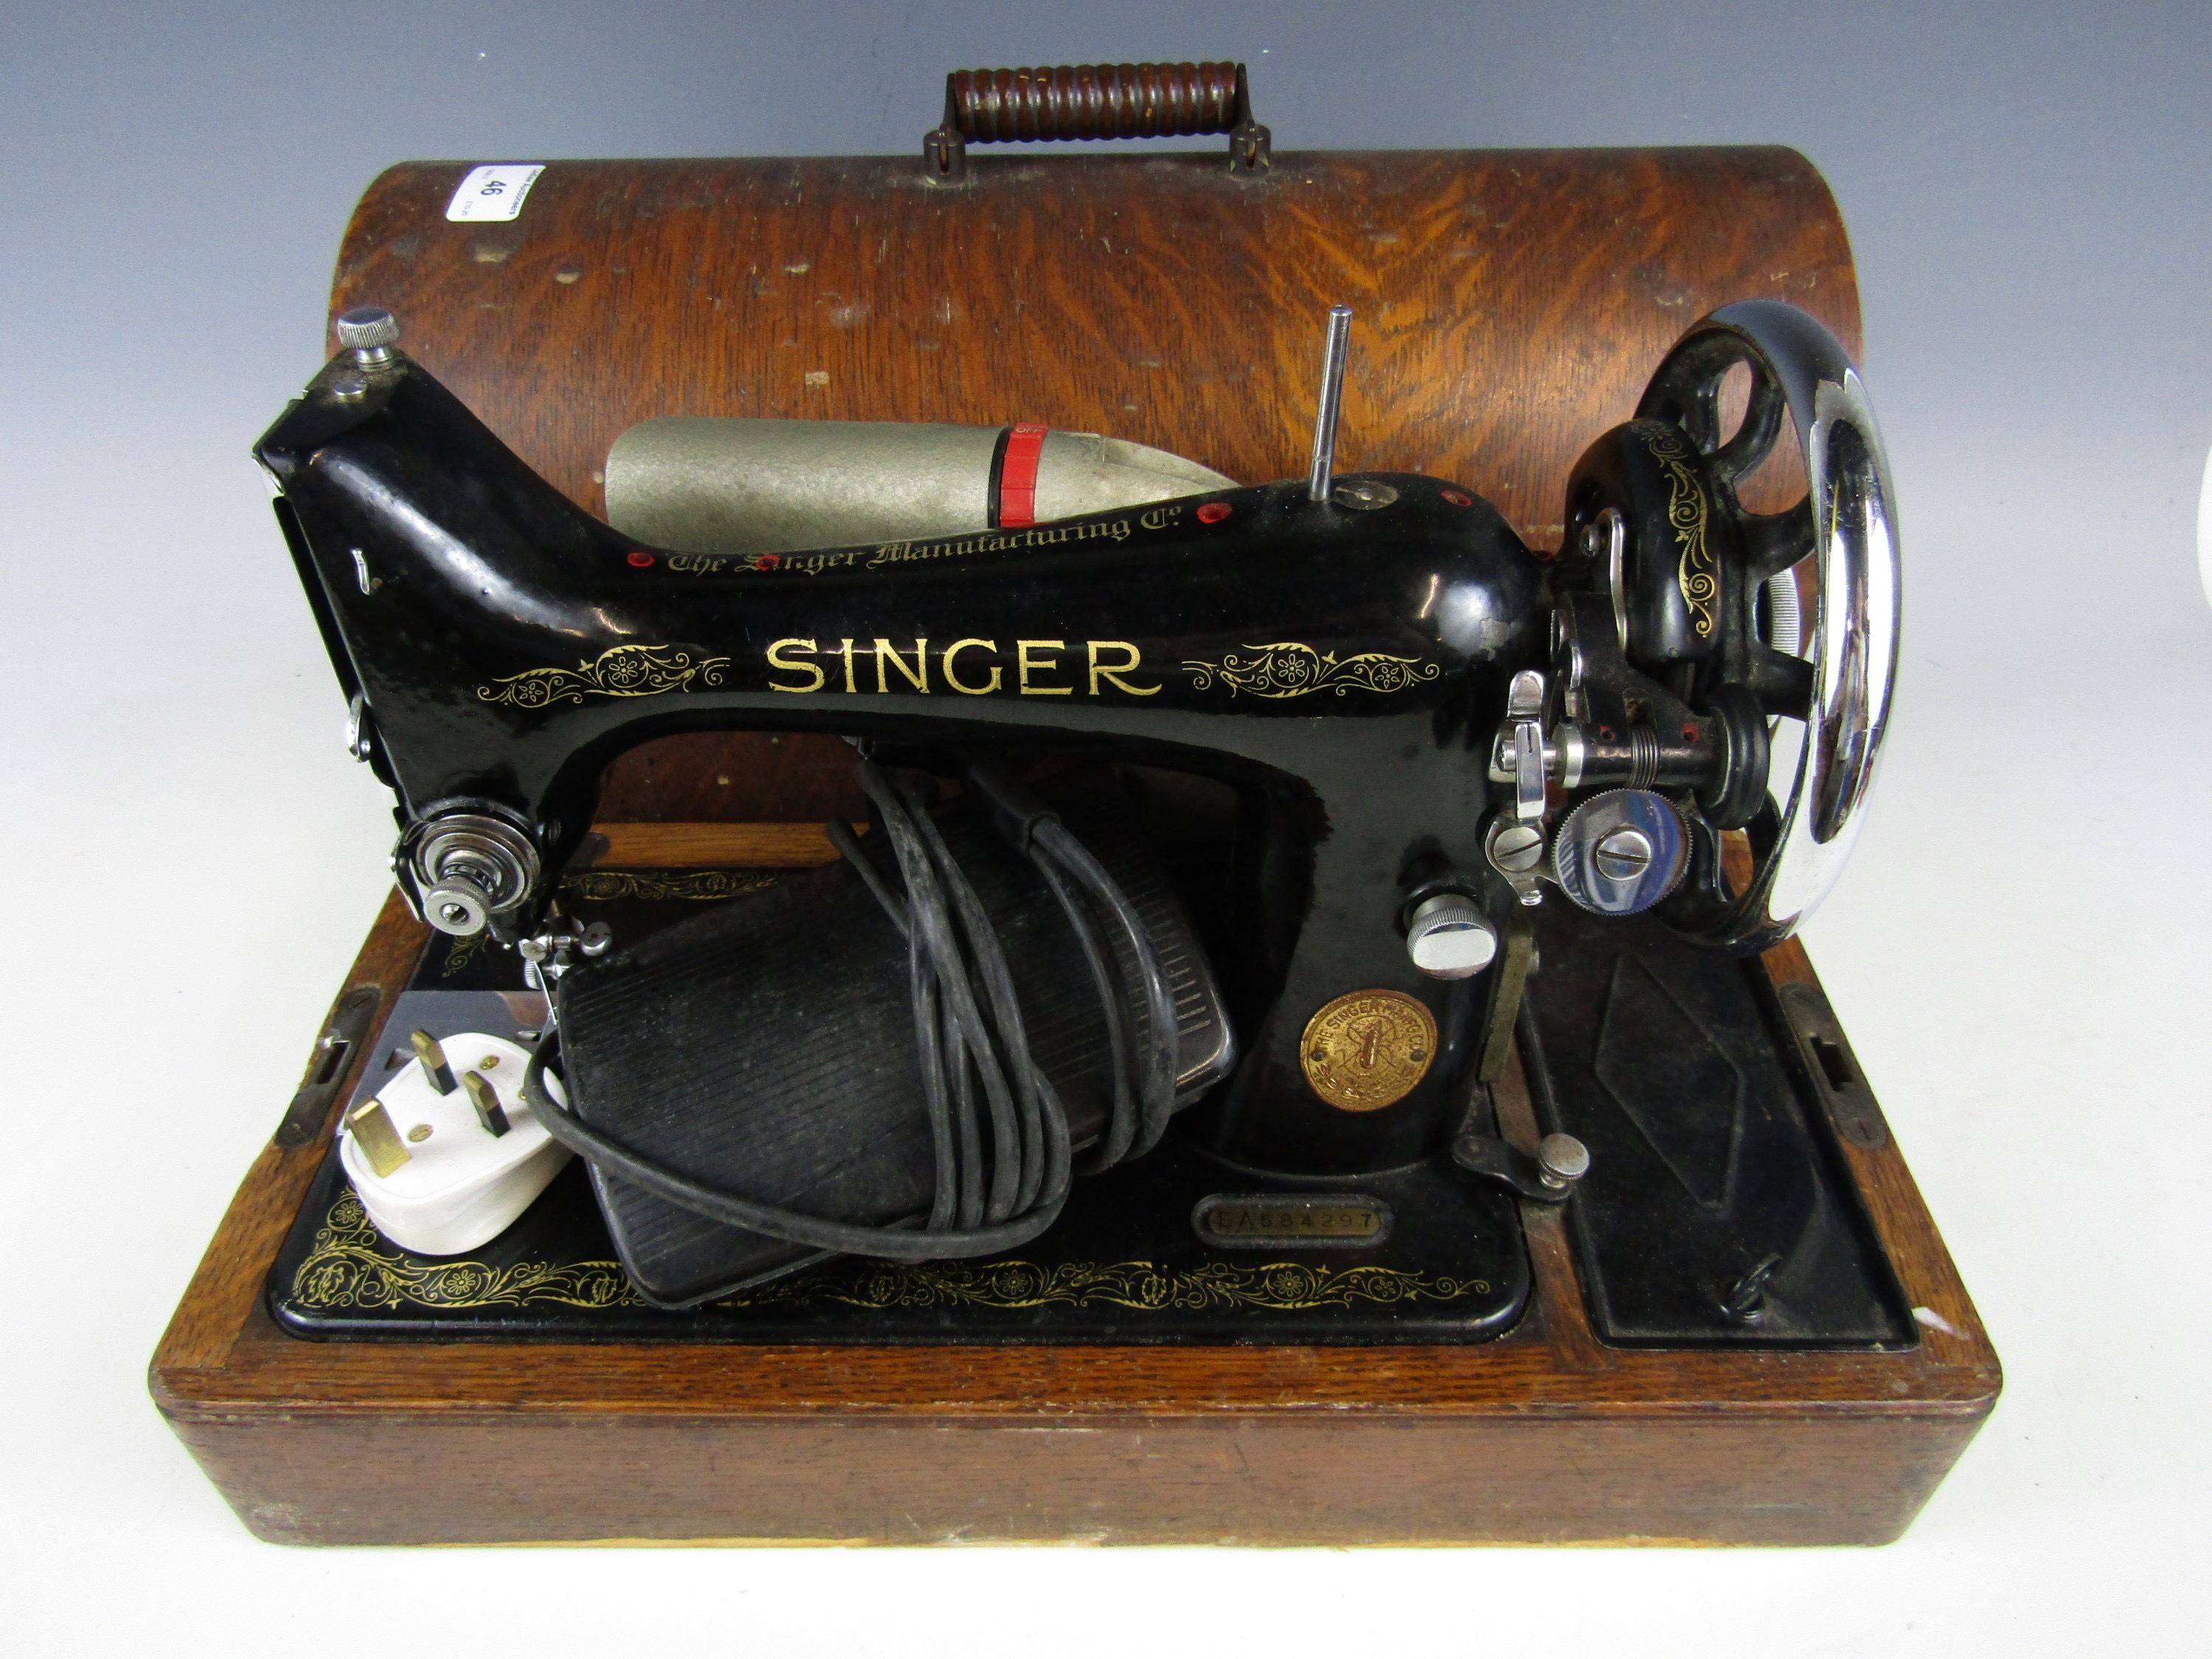 Lot 52 - An early 20th Century Singer sewing machine, with original instruction manual